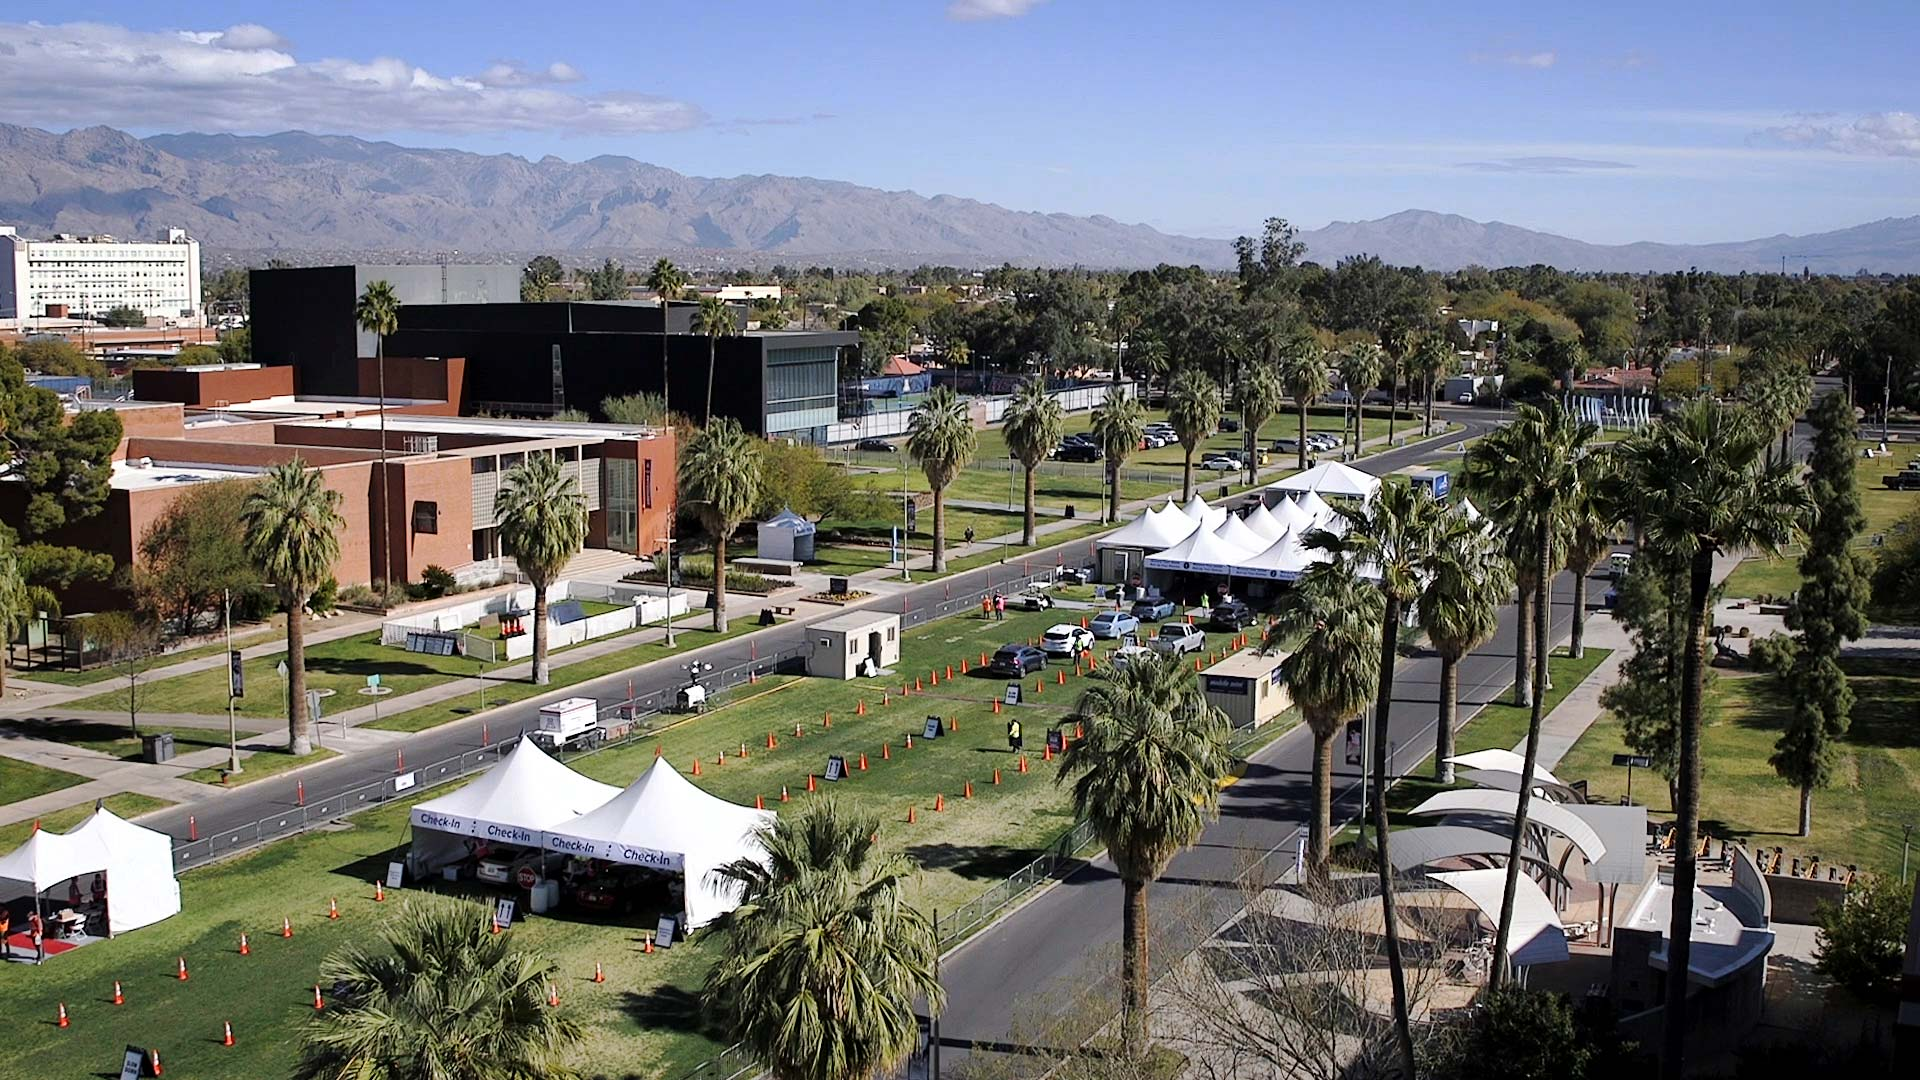 A COVID-19 vaccination site set up on the University of Arizona Mall. January 2021.